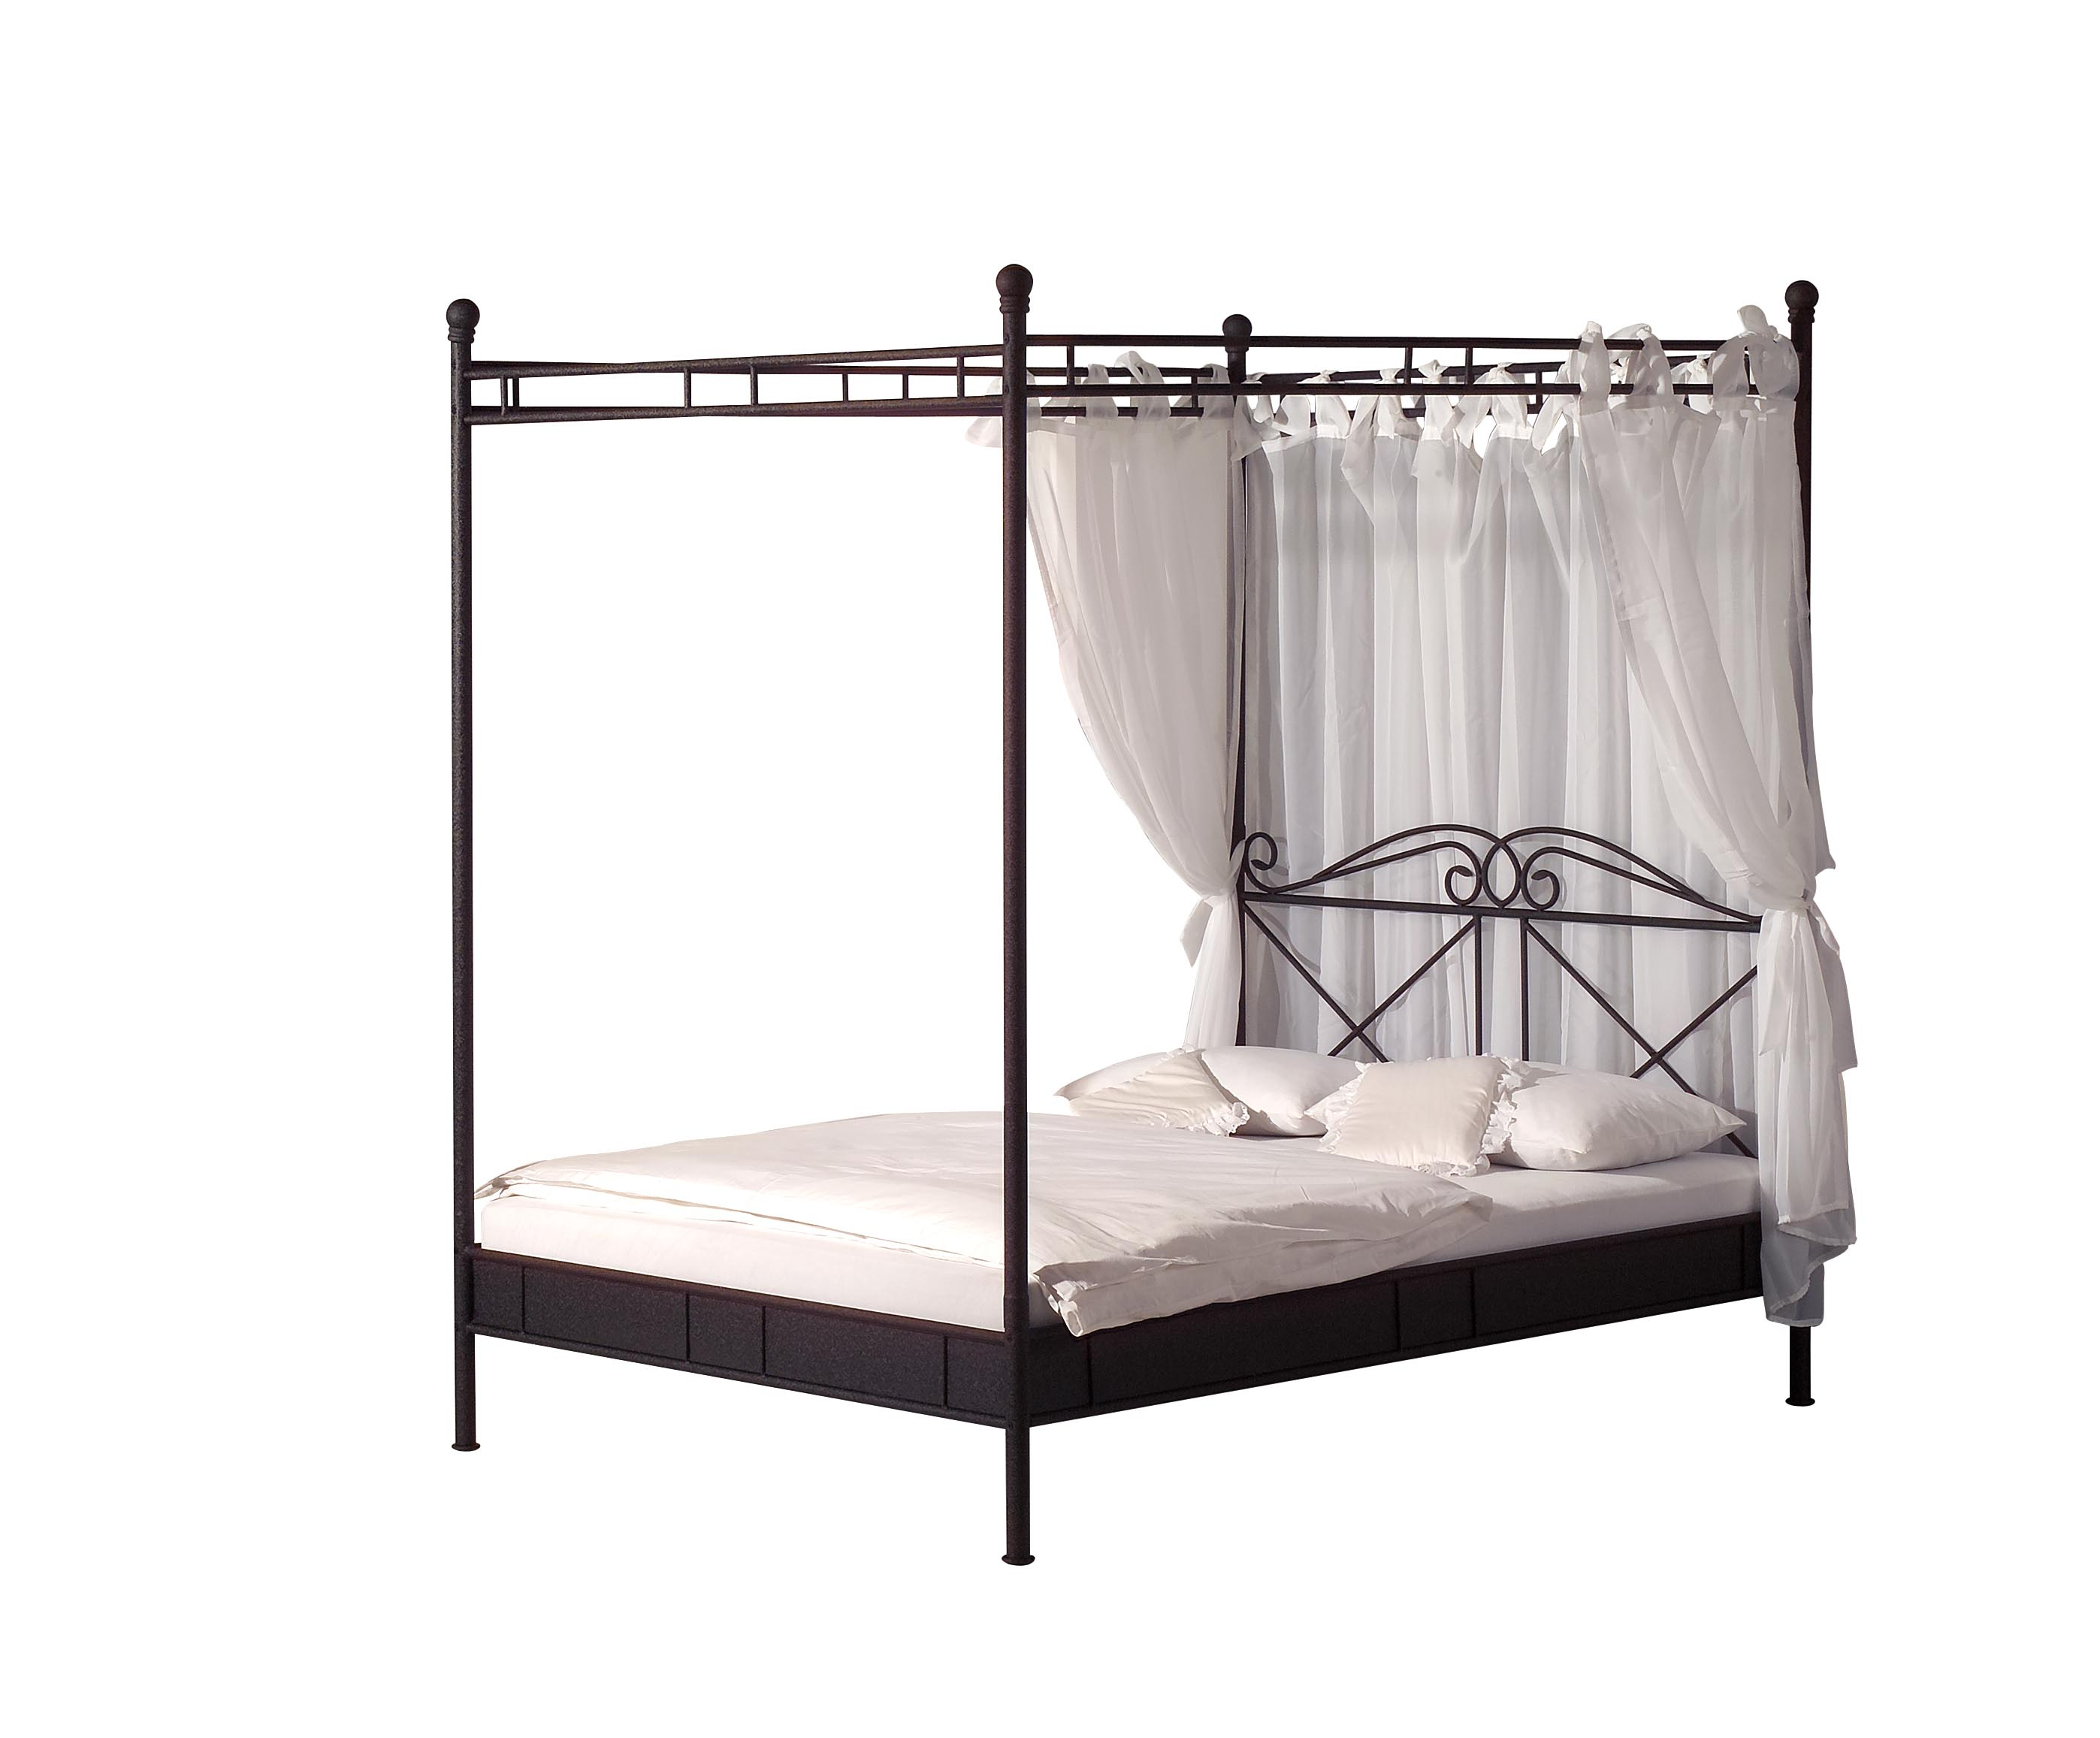 metall himmelbett inkl vorhang venedig in schwarz metallbett 3 gr en ebay. Black Bedroom Furniture Sets. Home Design Ideas